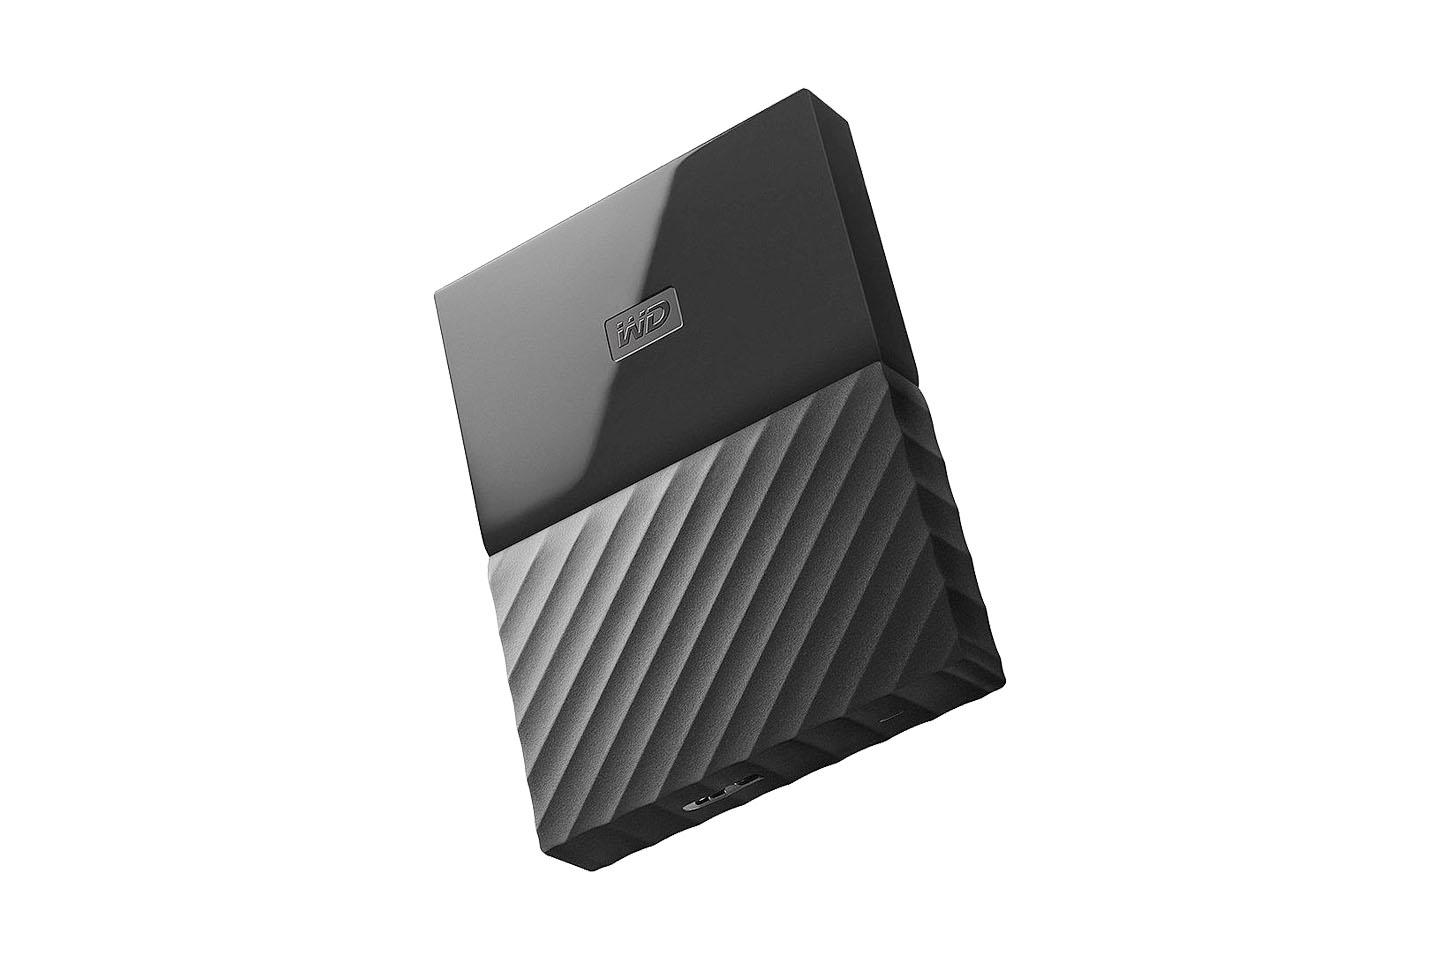 WesternDigital MyPassport HDD 4TB